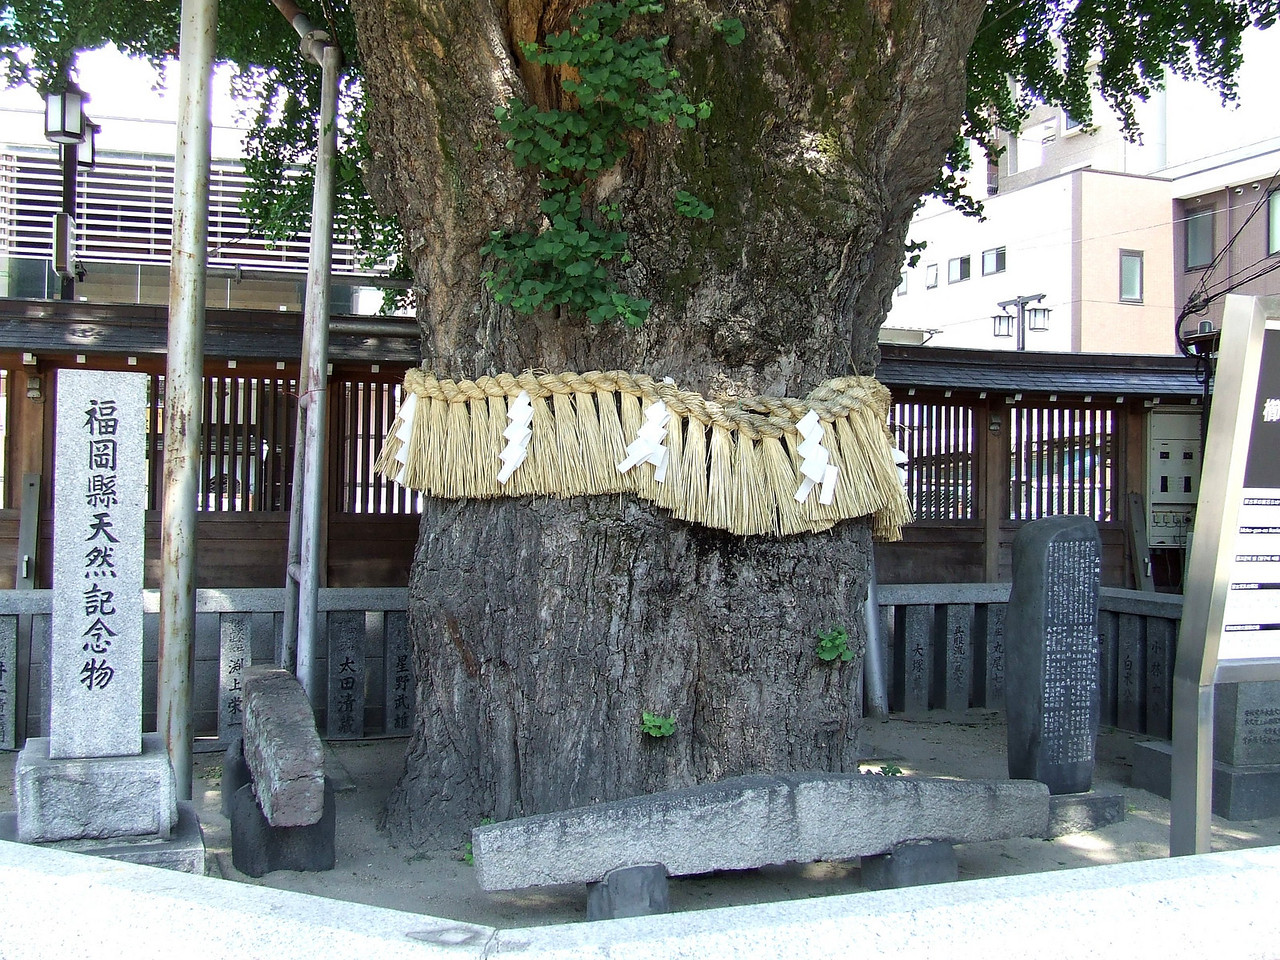 "In the shrine's yard grows an 800-year-old ginkgo tree.The tradition of wrapping tree trunks or adorning branches of special trees is a visual statement that says, ""We honor this tree and respect its vital presence."" It is often done with fiber rope , natural ribbon, or fabric."